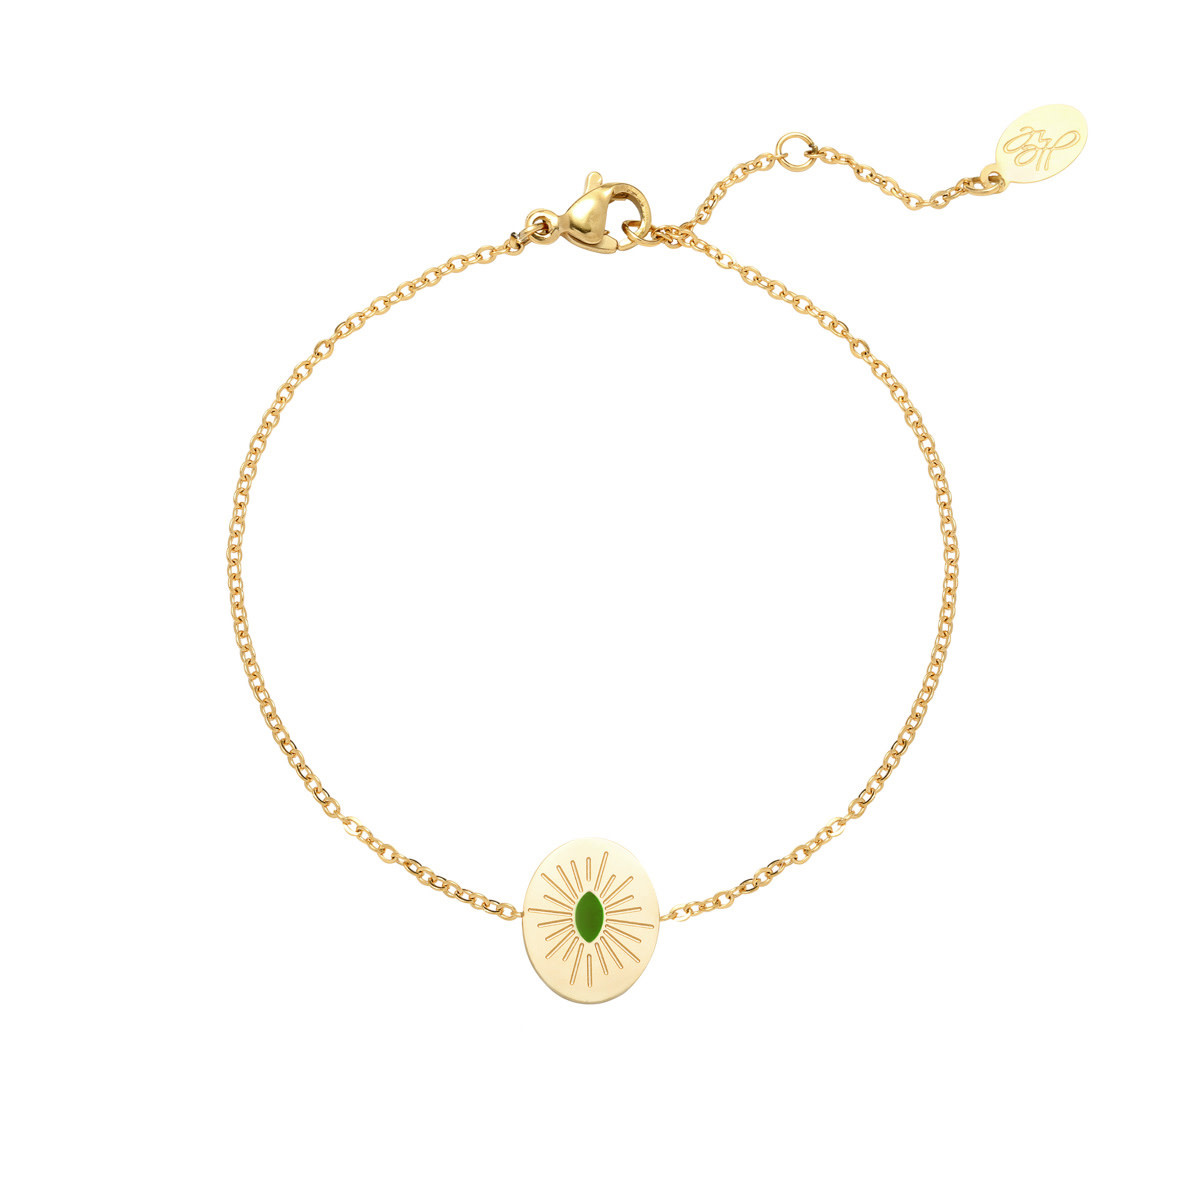 With love Bracelet sweet like candy gold - green